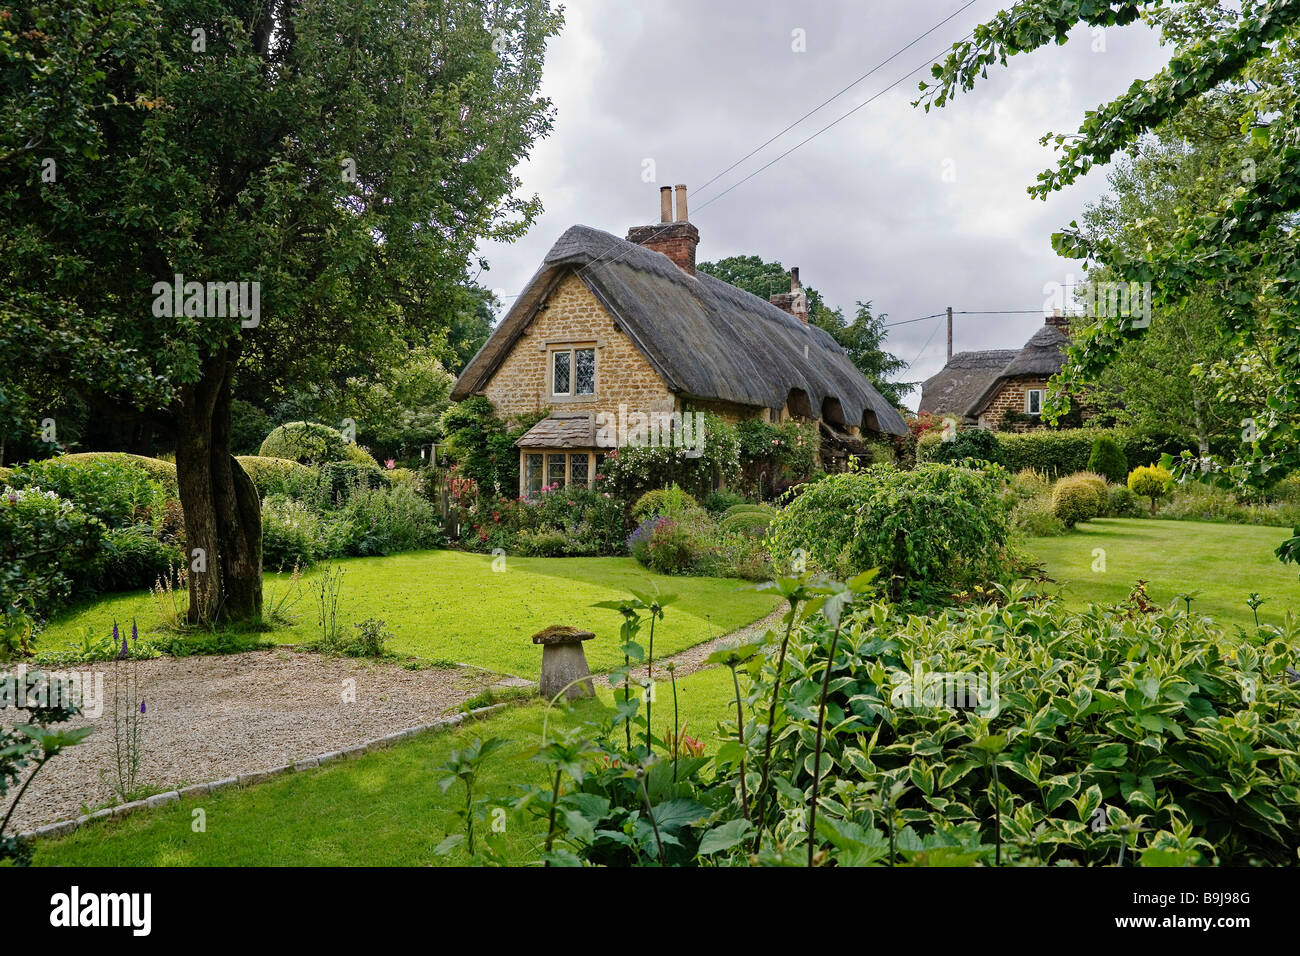 Typical old English country houses, England, United Kingdom, Europe - Stock Image